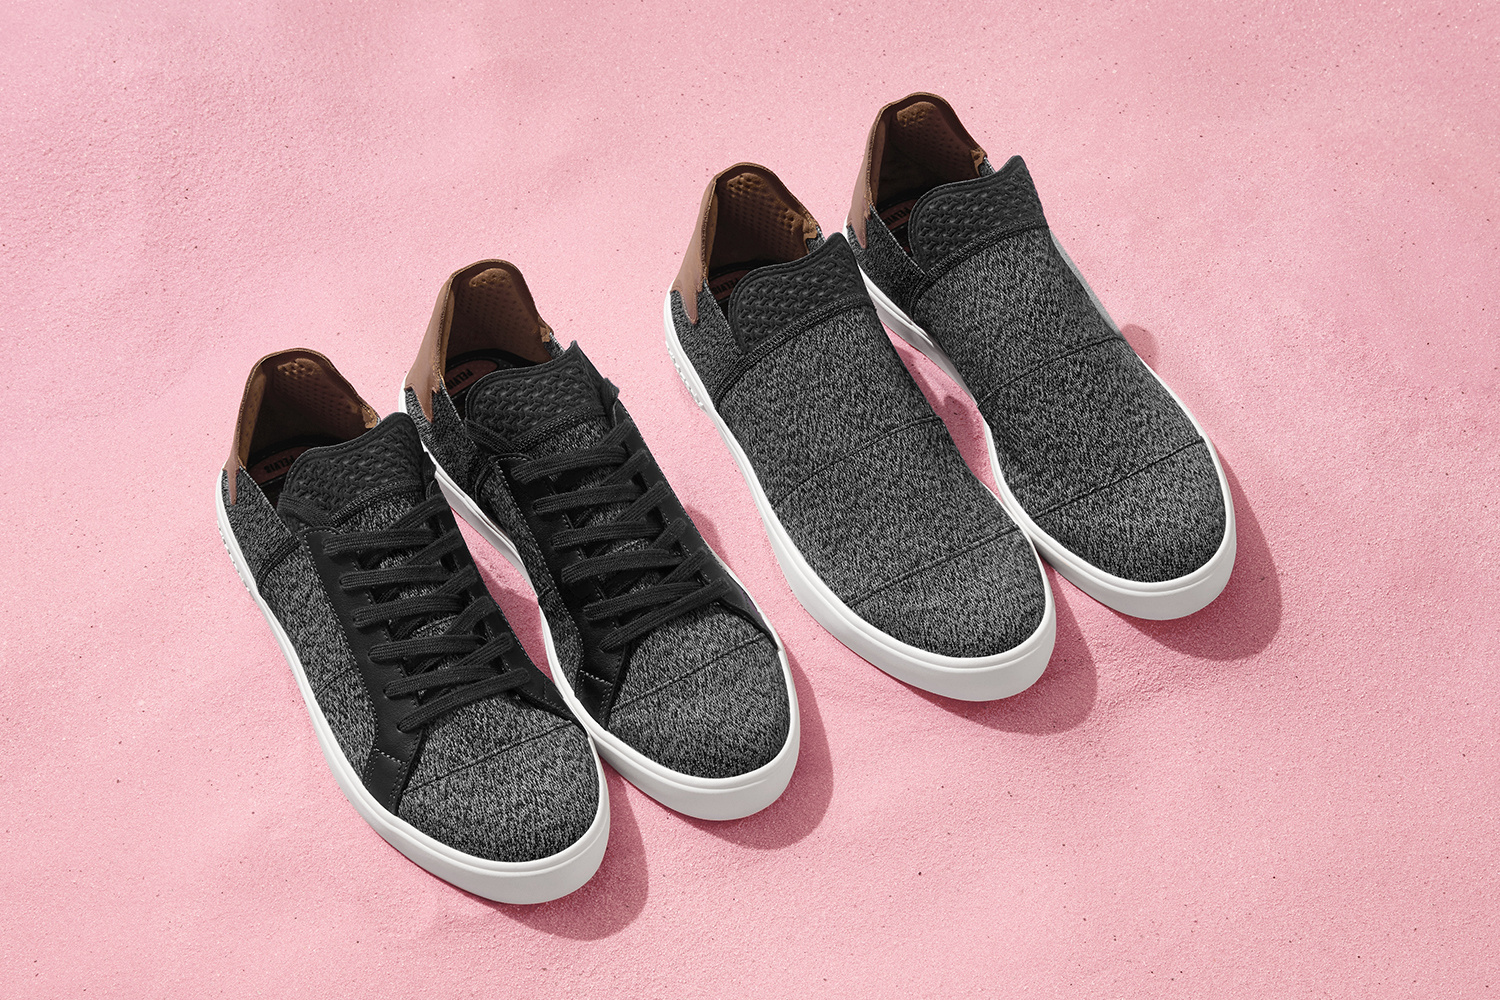 pharrell-adidas-pink-beach-delivery-2-9.jpg